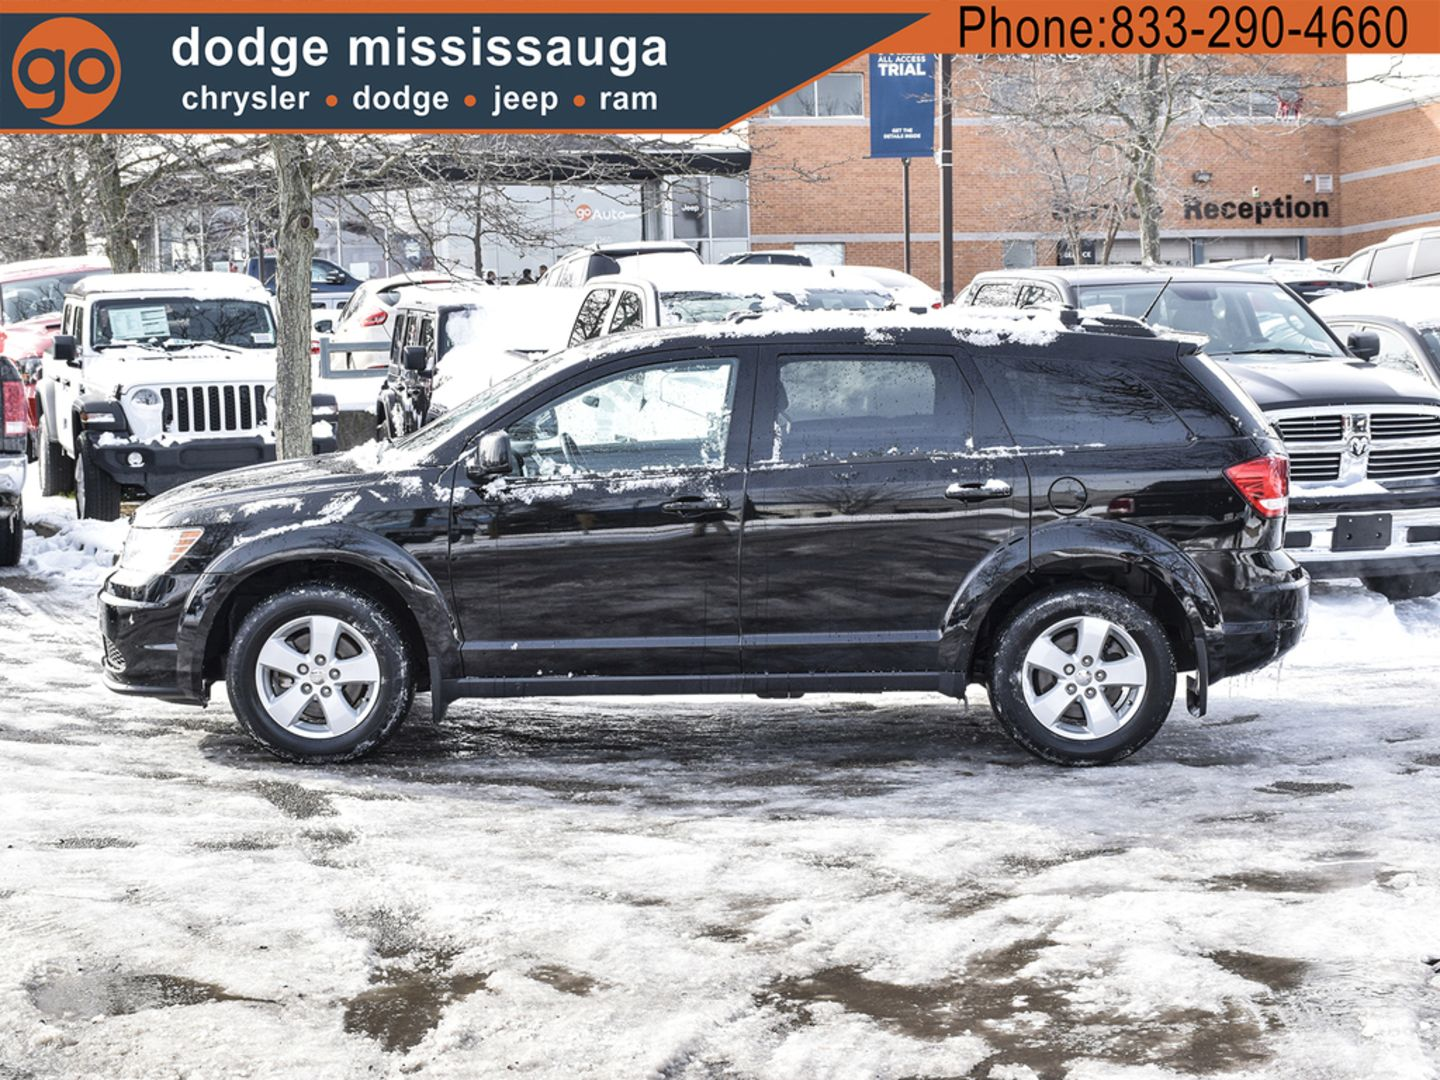 2017 Dodge Journey SE Plus for sale in Mississauga, Ontario